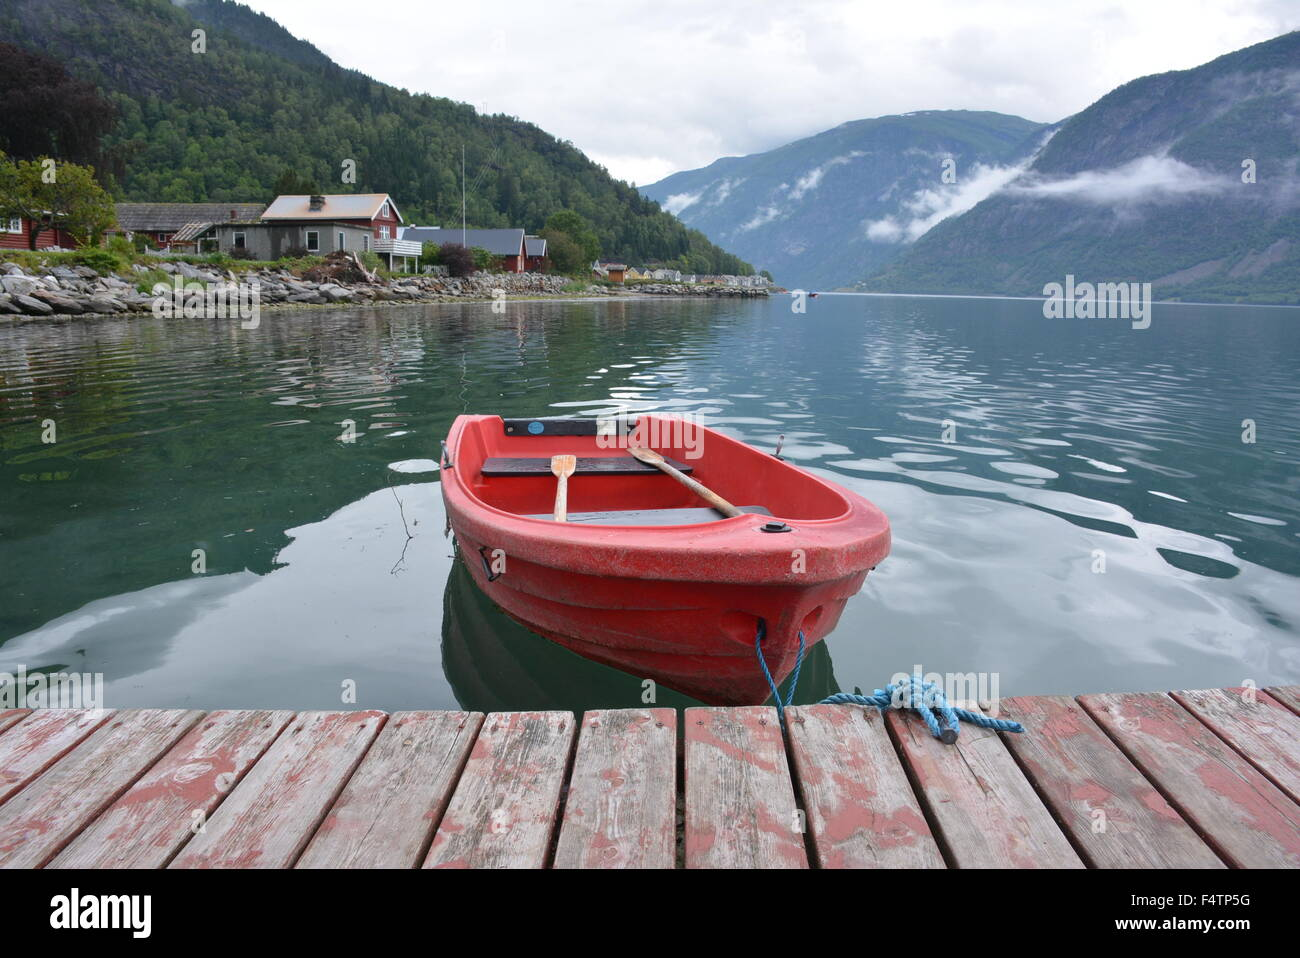 Norway, Scandinavia, holidays, lakes,boat trips, Norwegian fjords, mountains,family days out, trips, adventure, Stock Photo